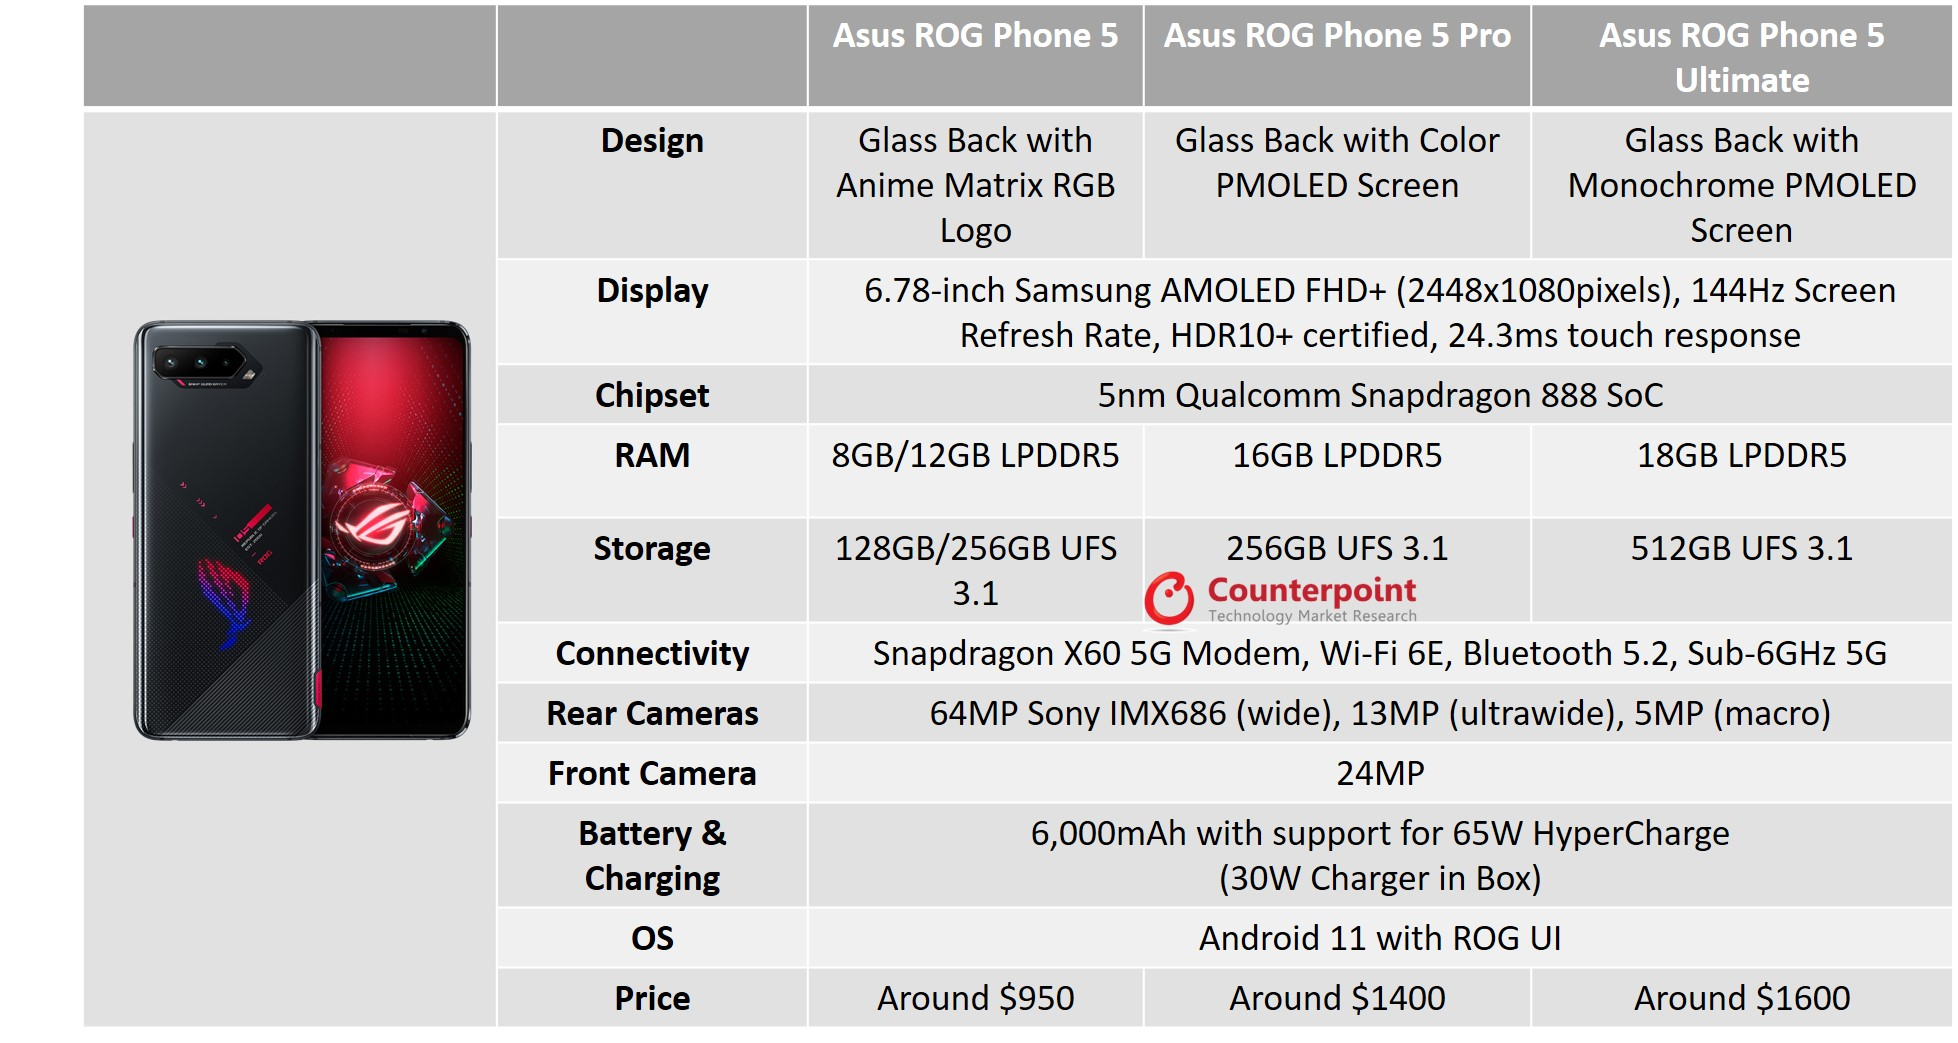 First Impressions: Asus ROG Phone 5 Brings Promising Upgrade, But Competition Gets Fierce